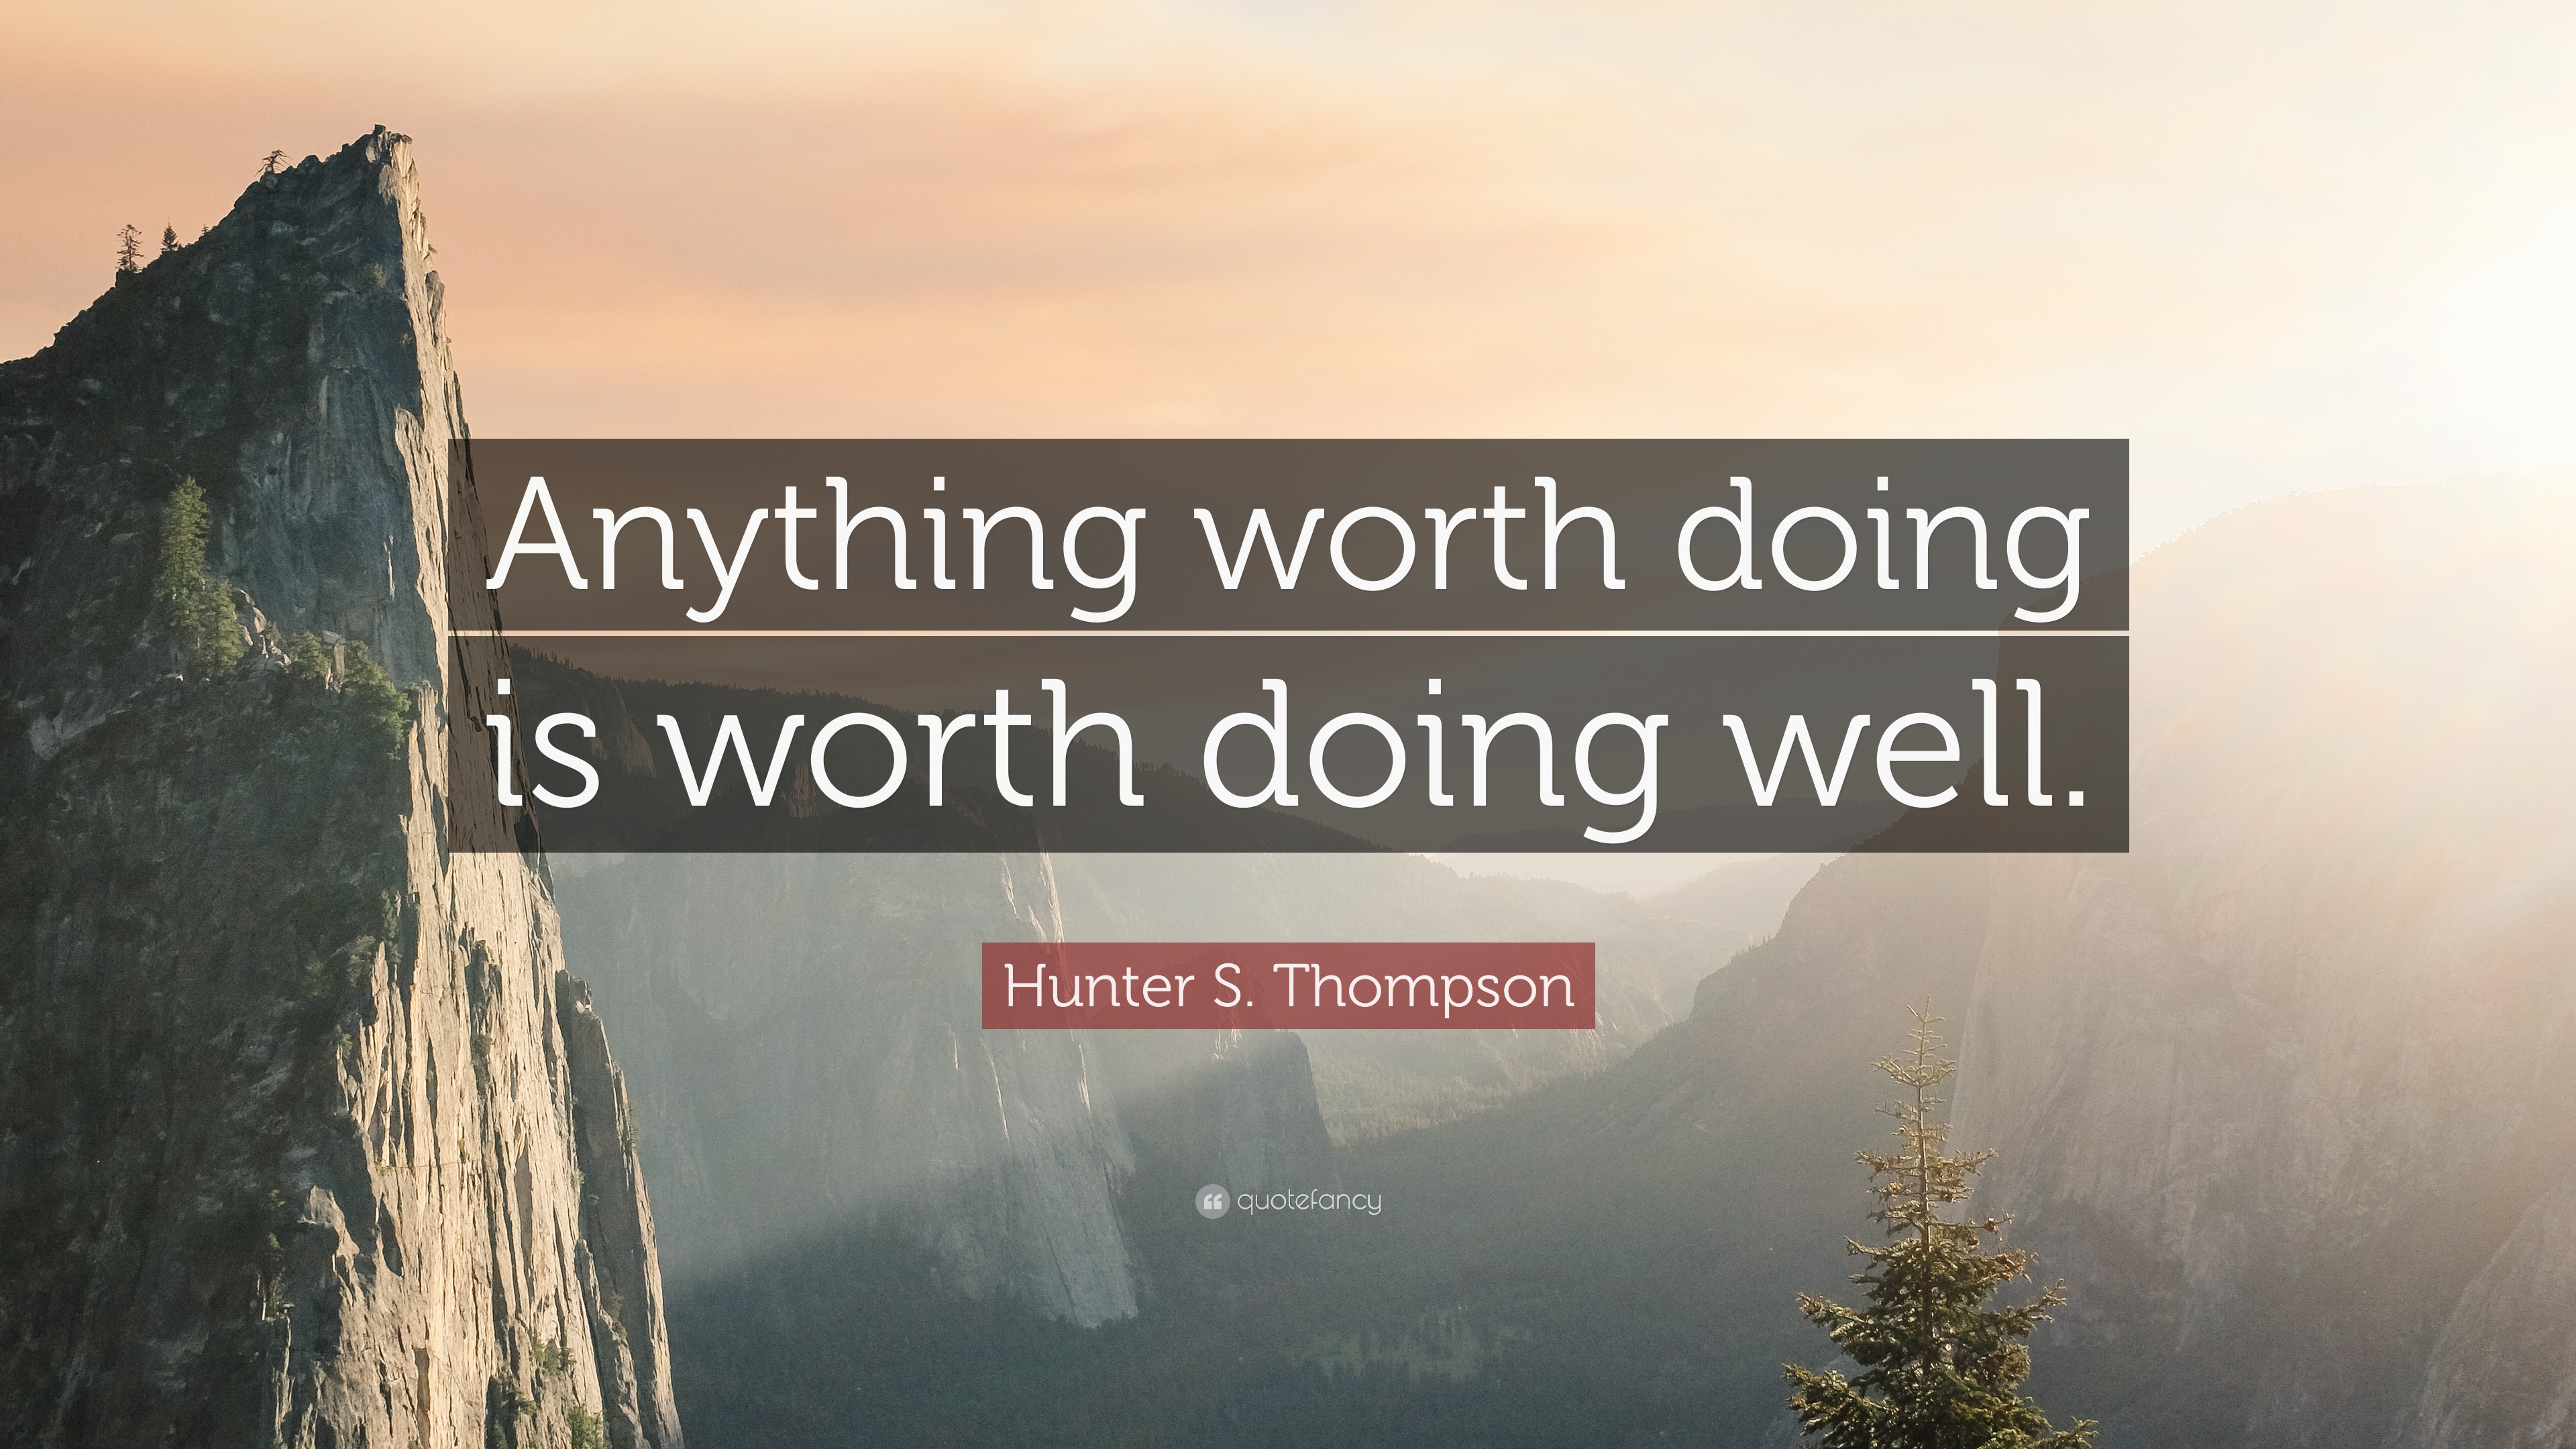 Hunter S Thompson Quote Wallpaper Hunter S Thompson Quote Anything Worth Doing Is Worth